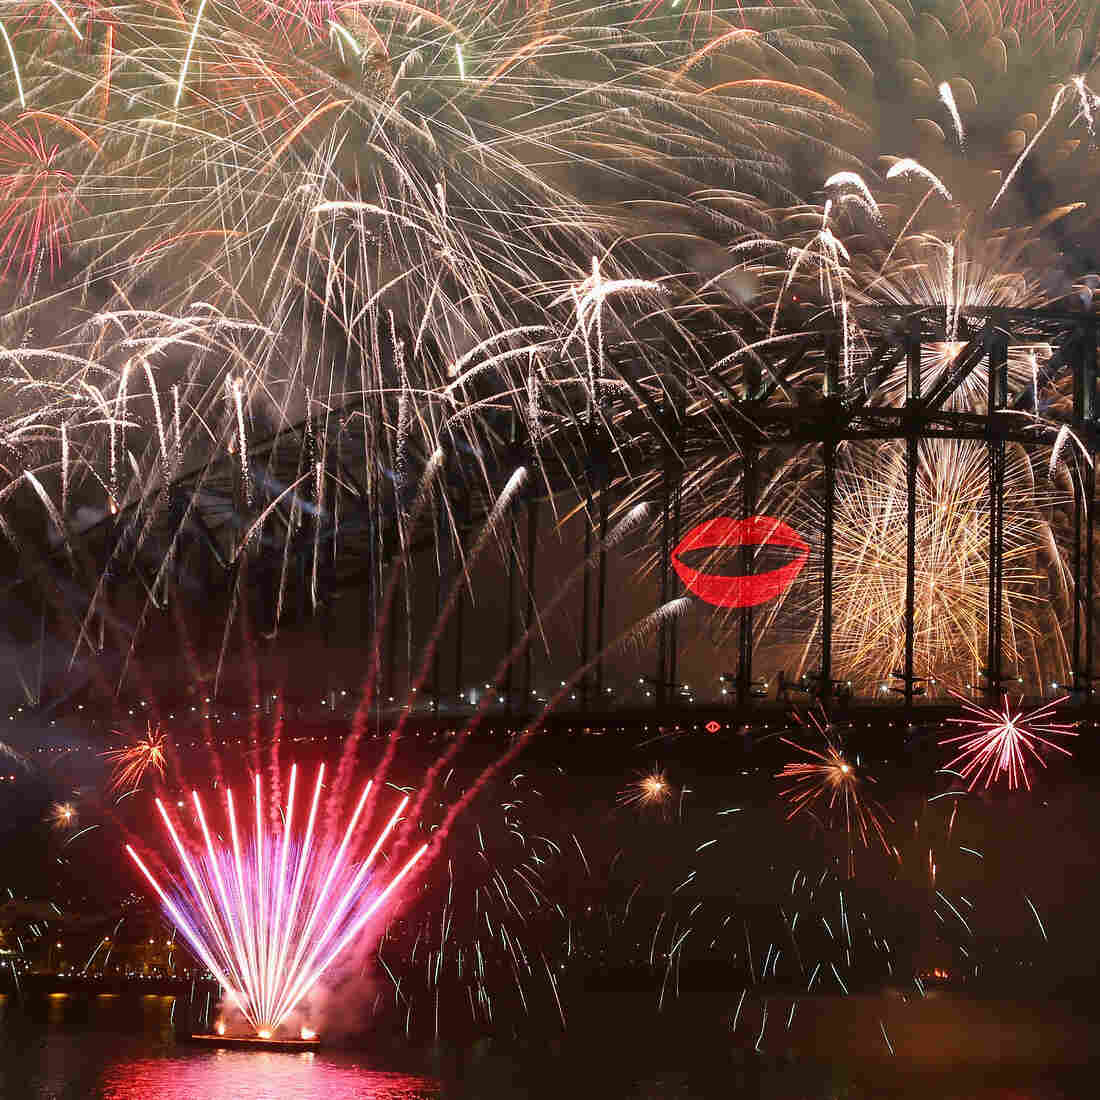 In Sydney, Australia, early today, New Year's Eve celebrations included fireworks and a big kiss.